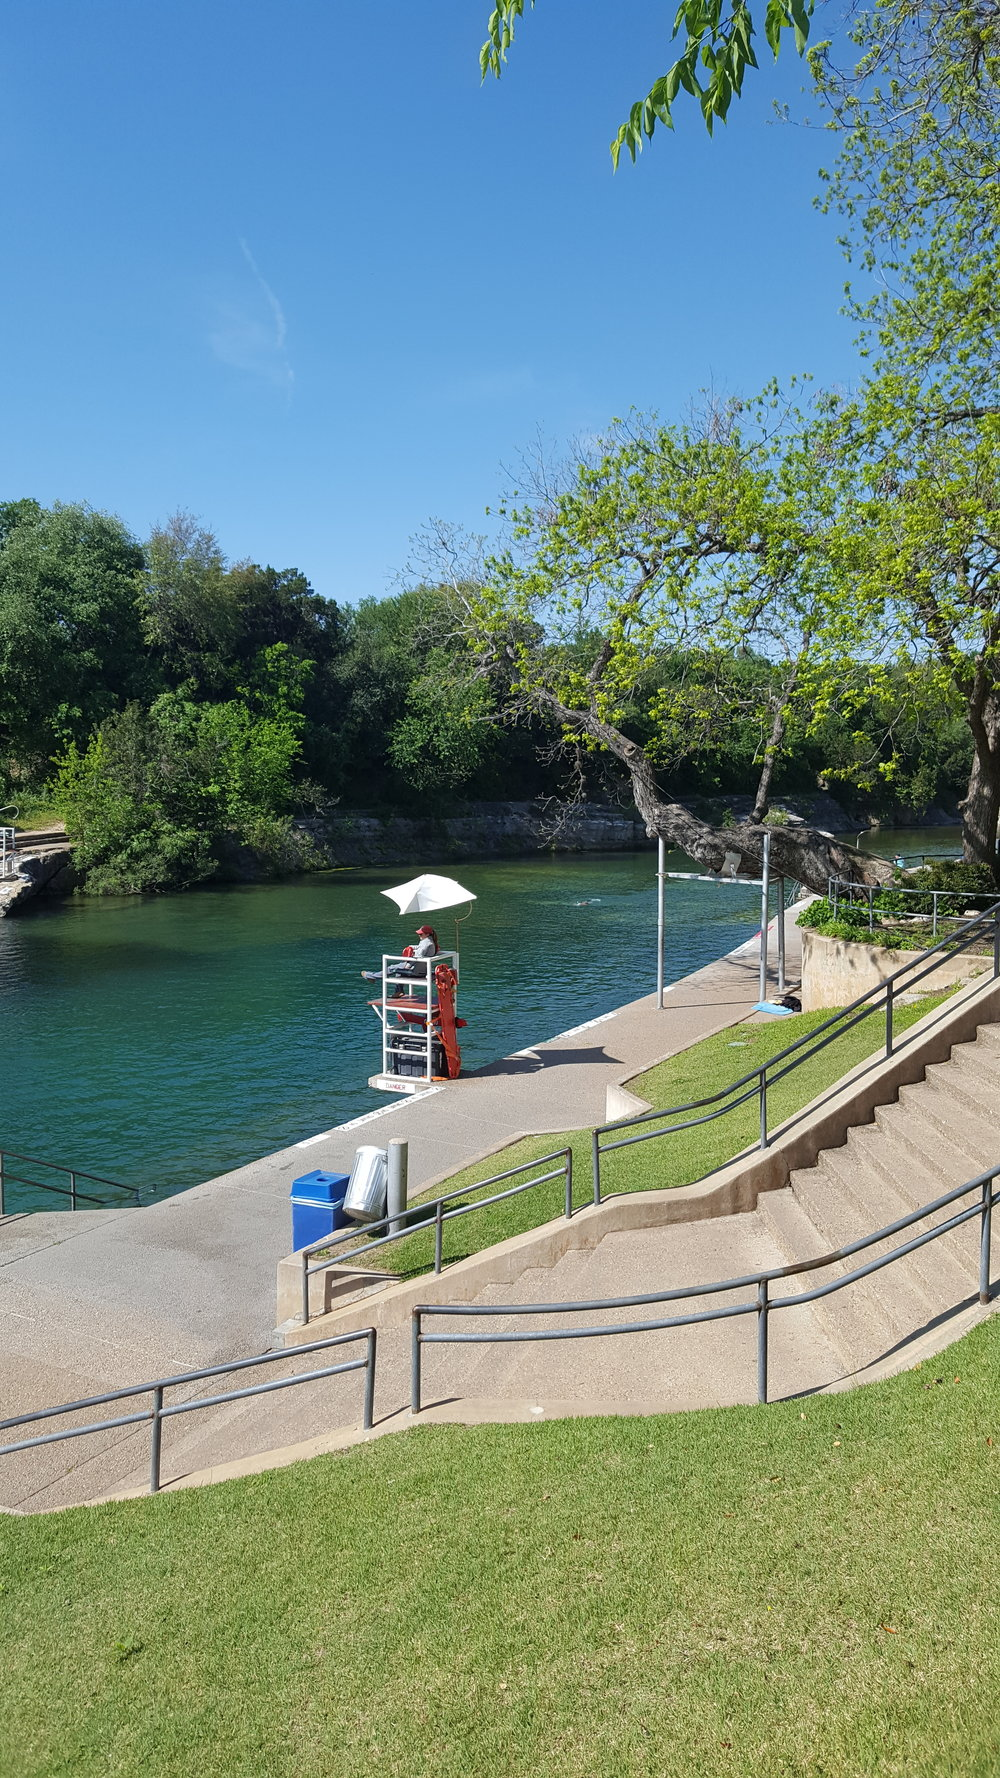 Barton Springs - An awesome river pool right in town!